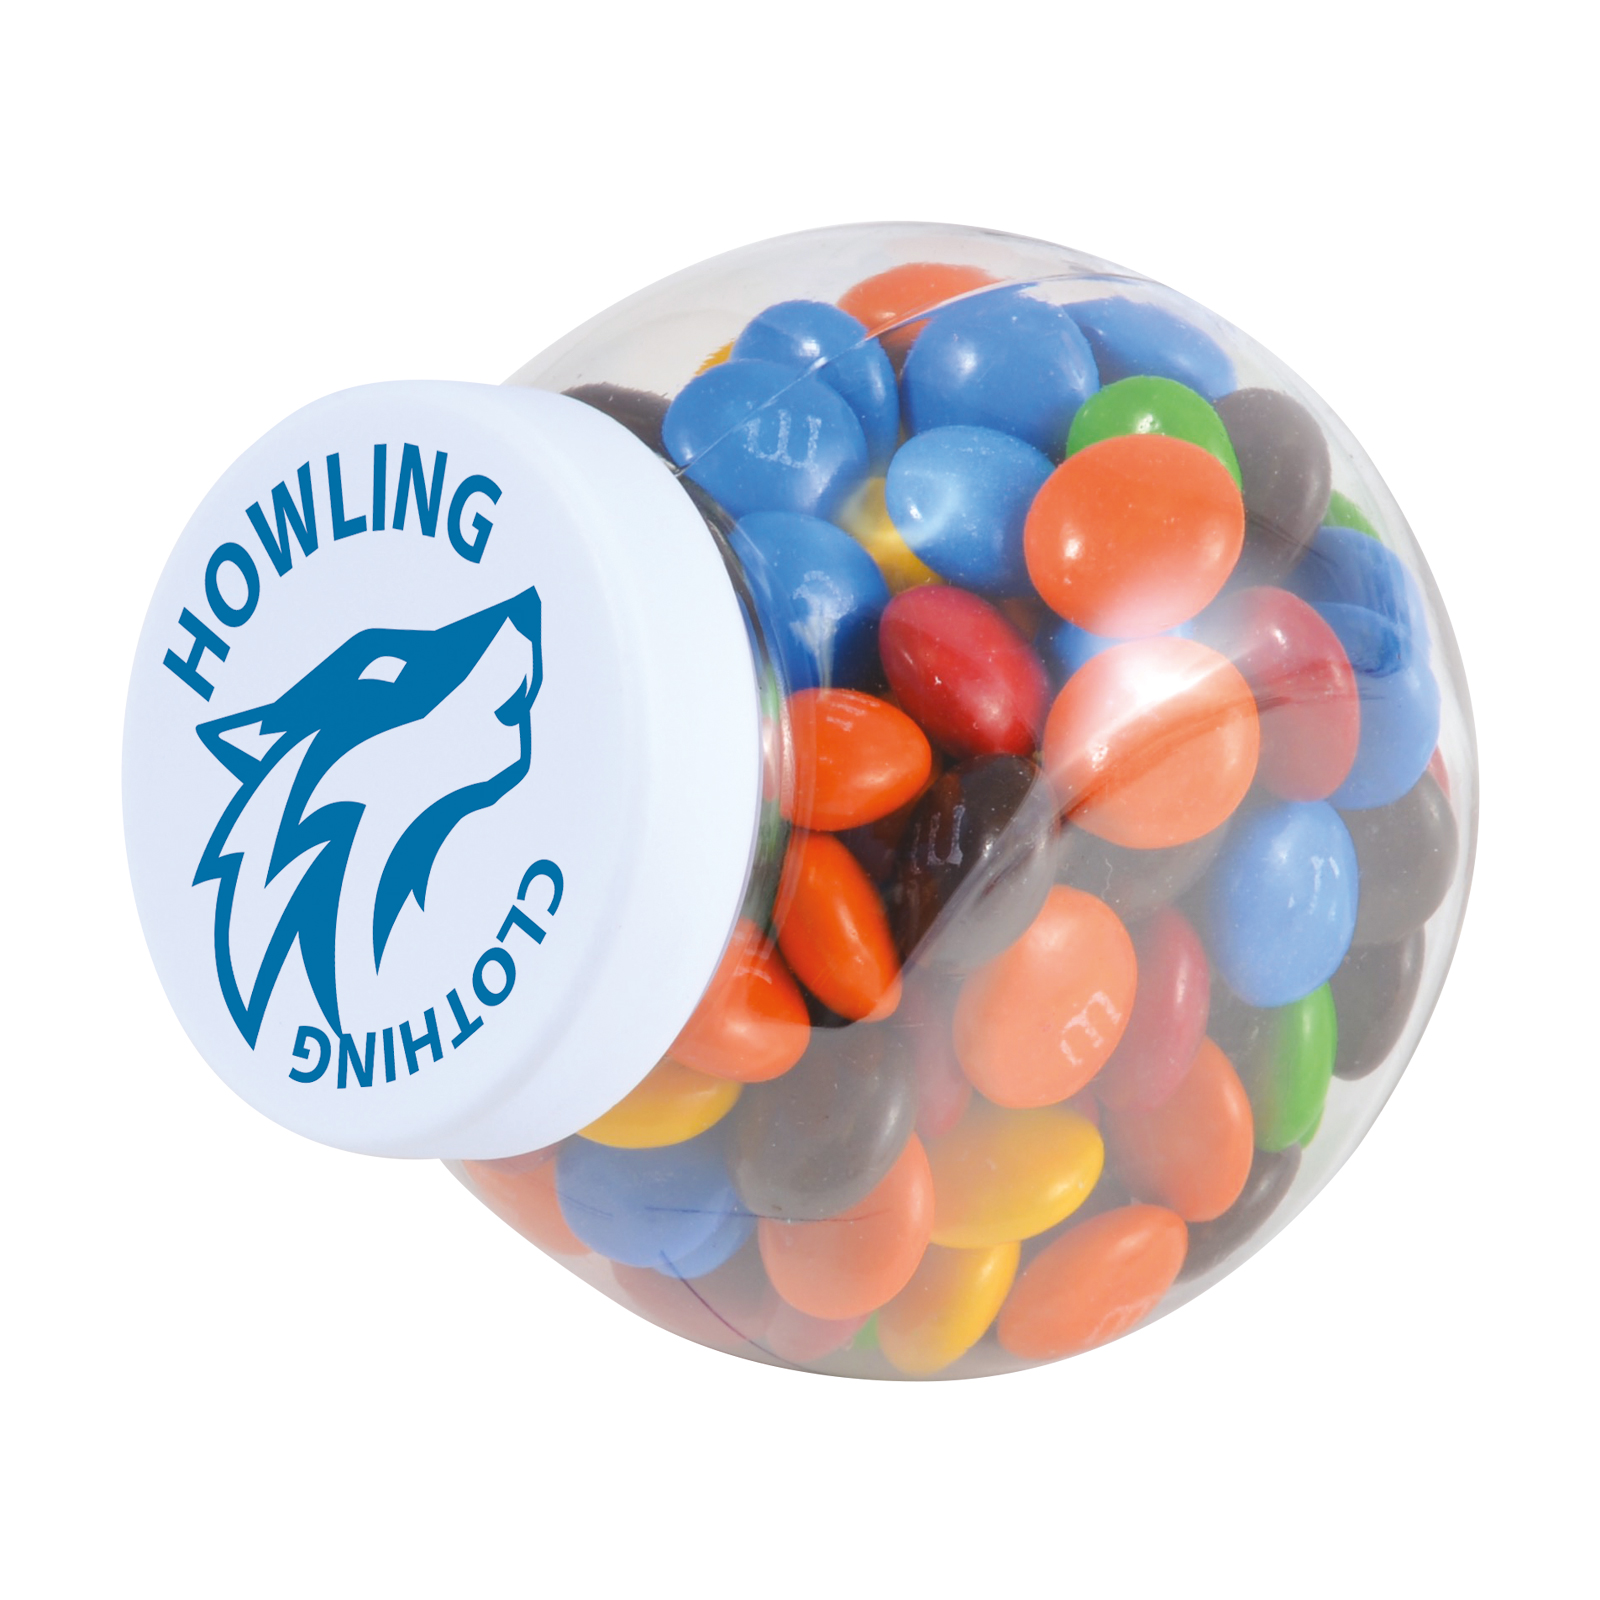 M&M's in Container - Includes a 1 colour printed logo